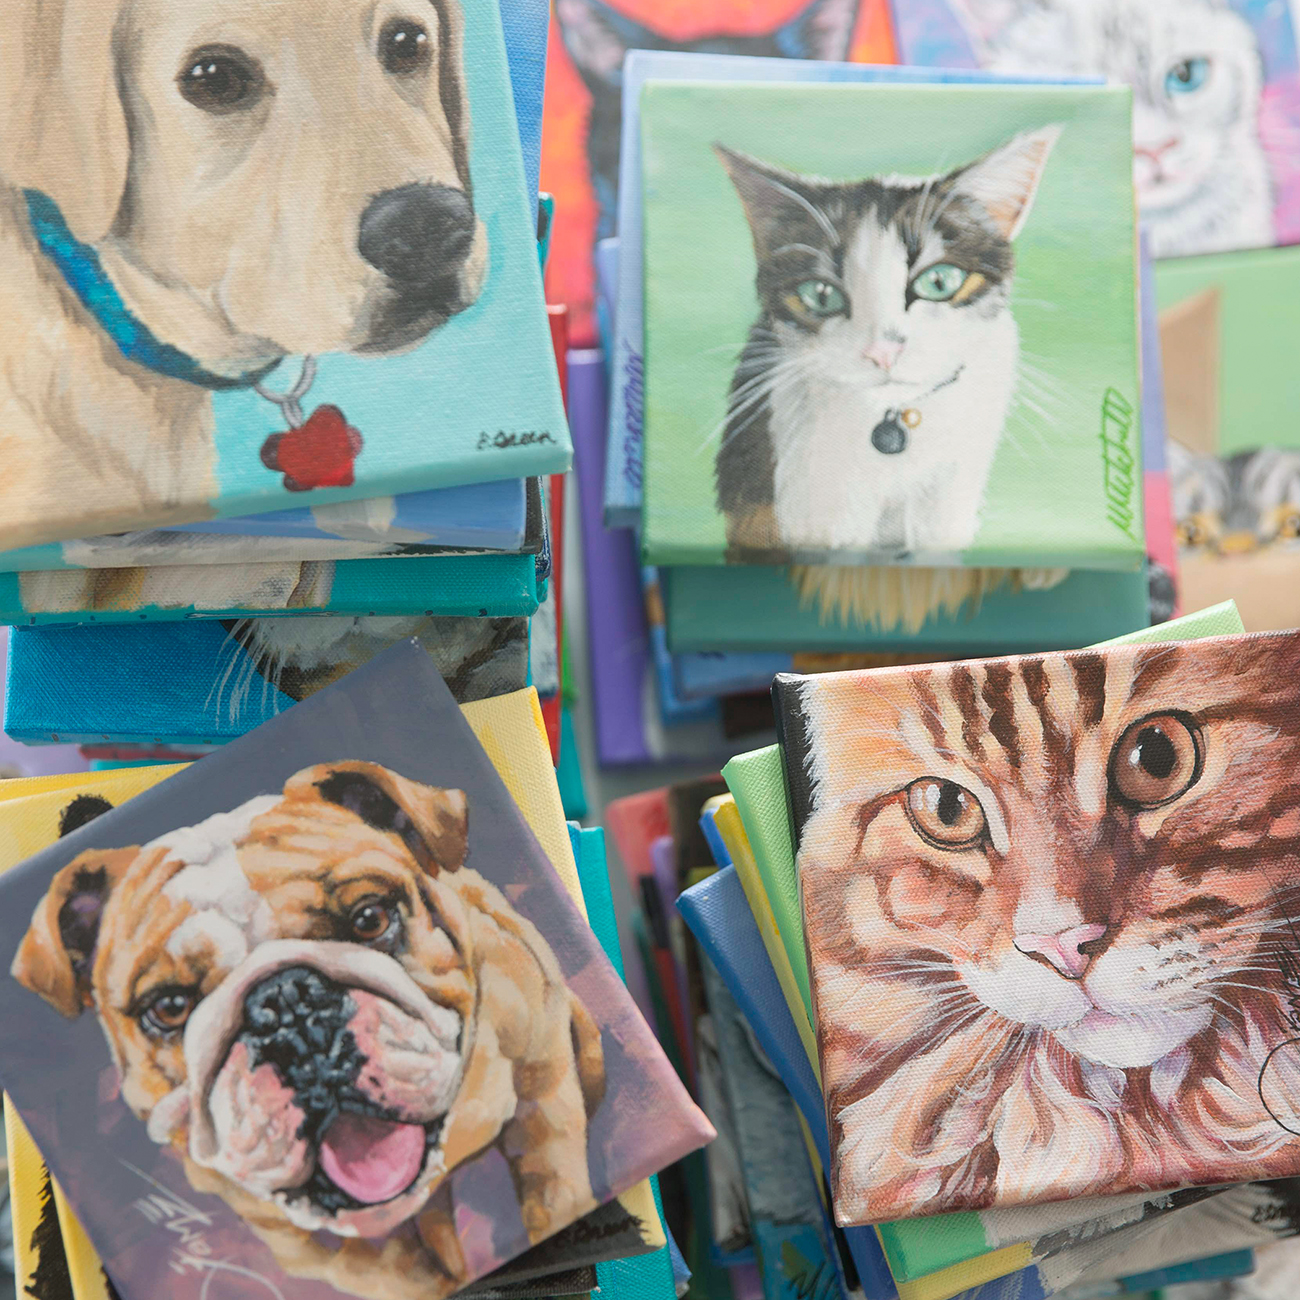 Four stacks of various painted pet portraits